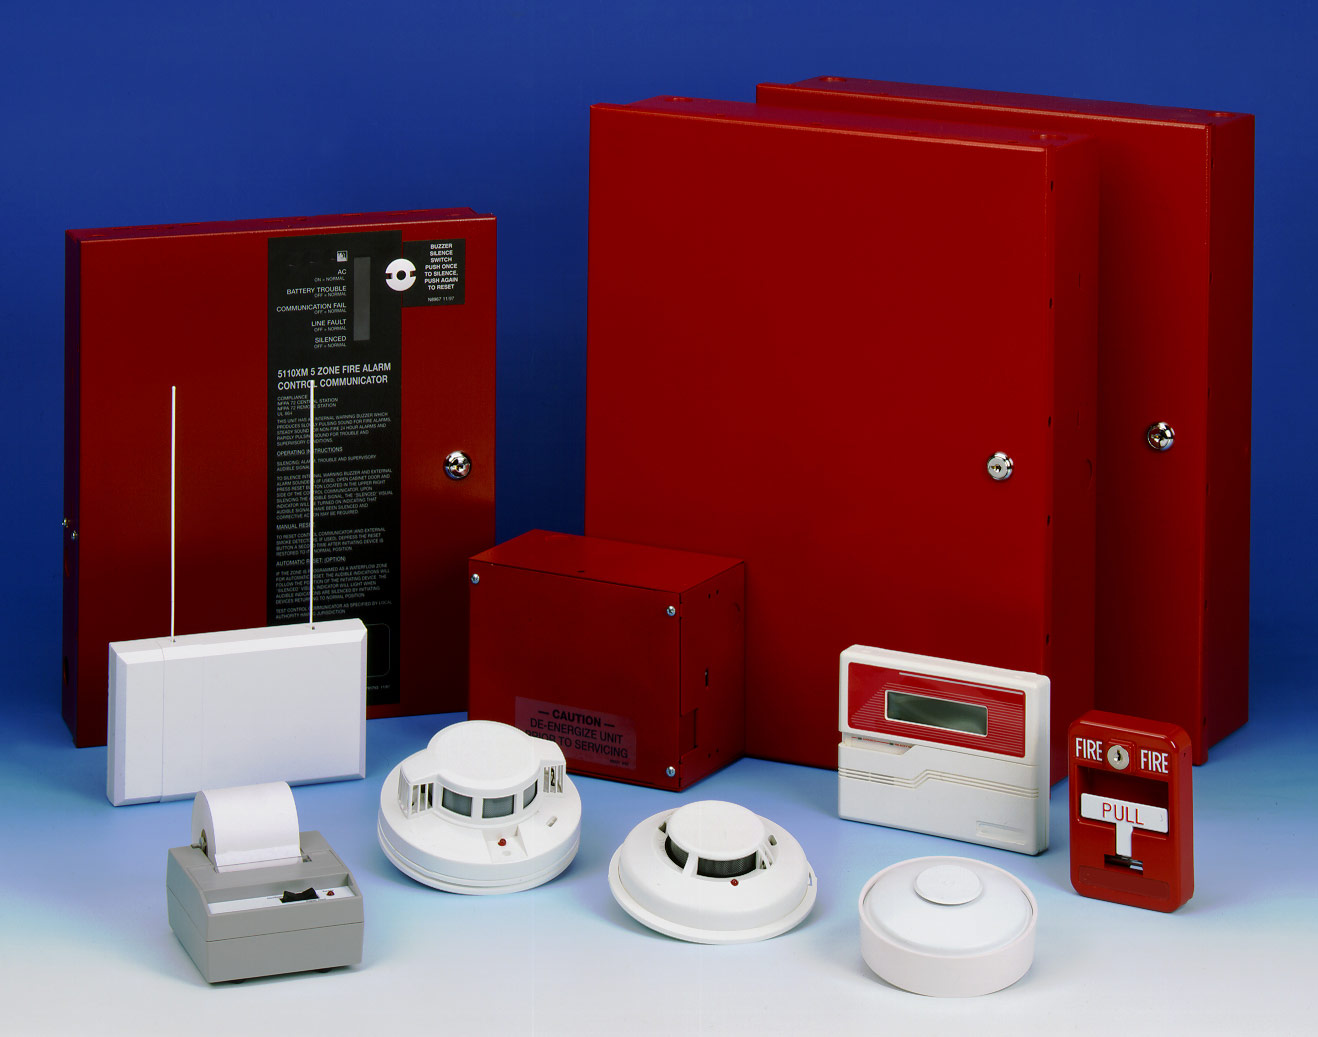 Terraquest International Fire Alarm System